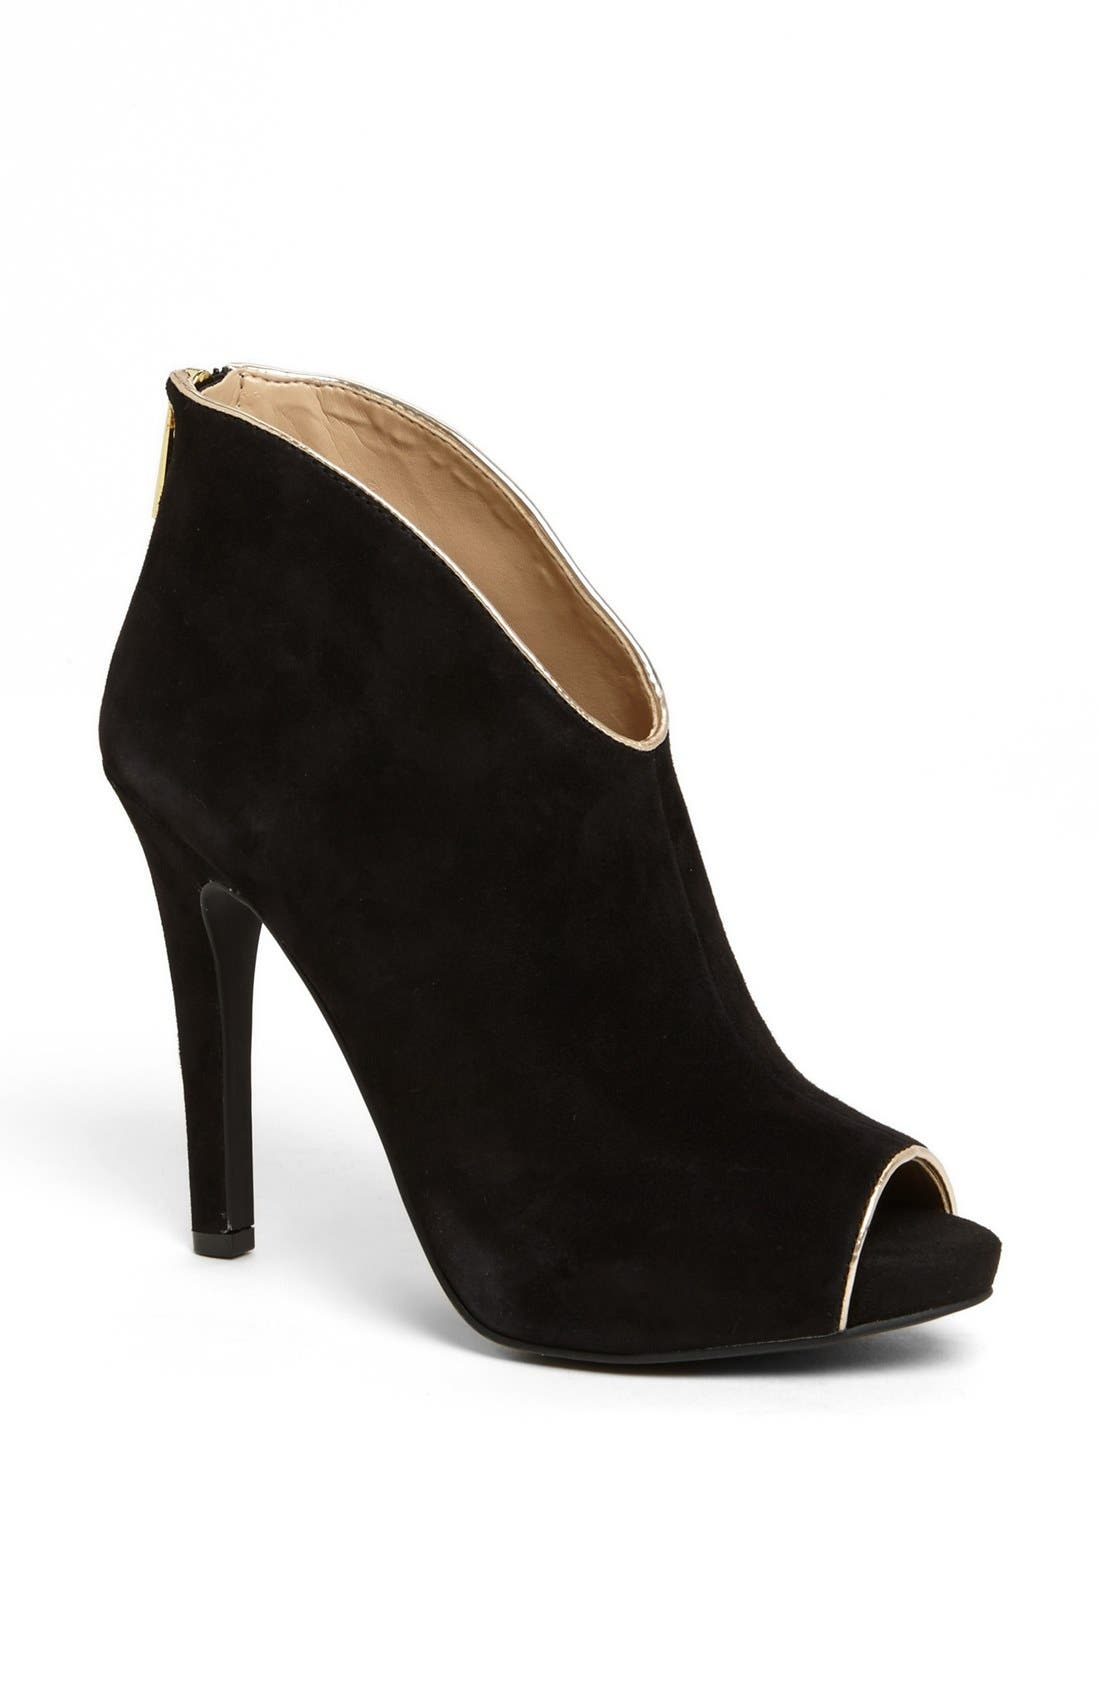 Alternate Image 1 Selected - Jessica Simpson 'Abbear' Peep Toe Bootie